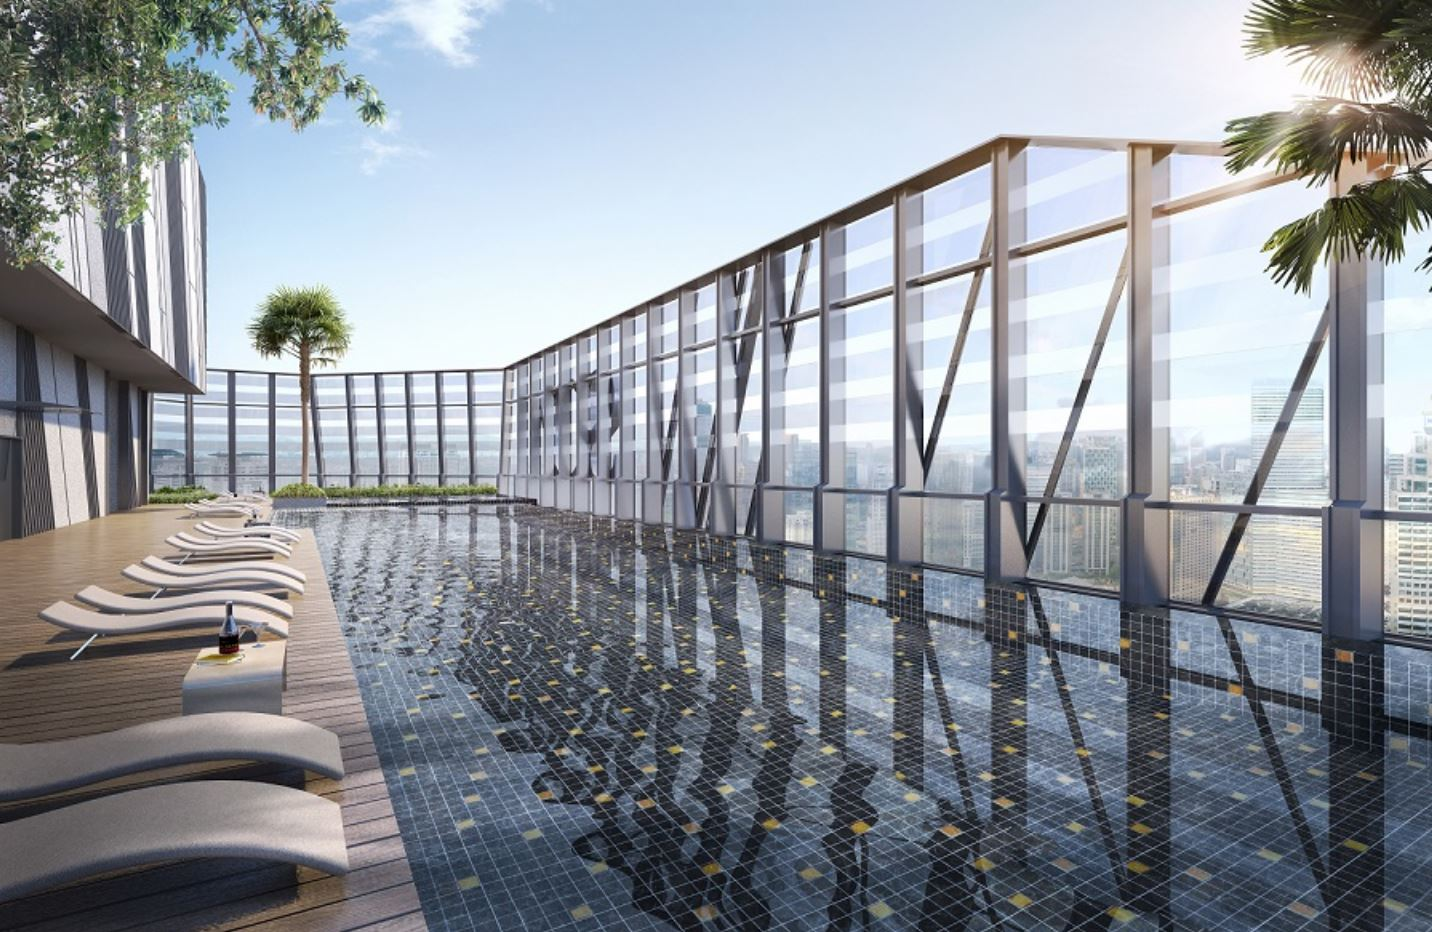 So Sofitel KL Residences Swimming Pool at Level 77 - One of the World's Highest Swimming Pool